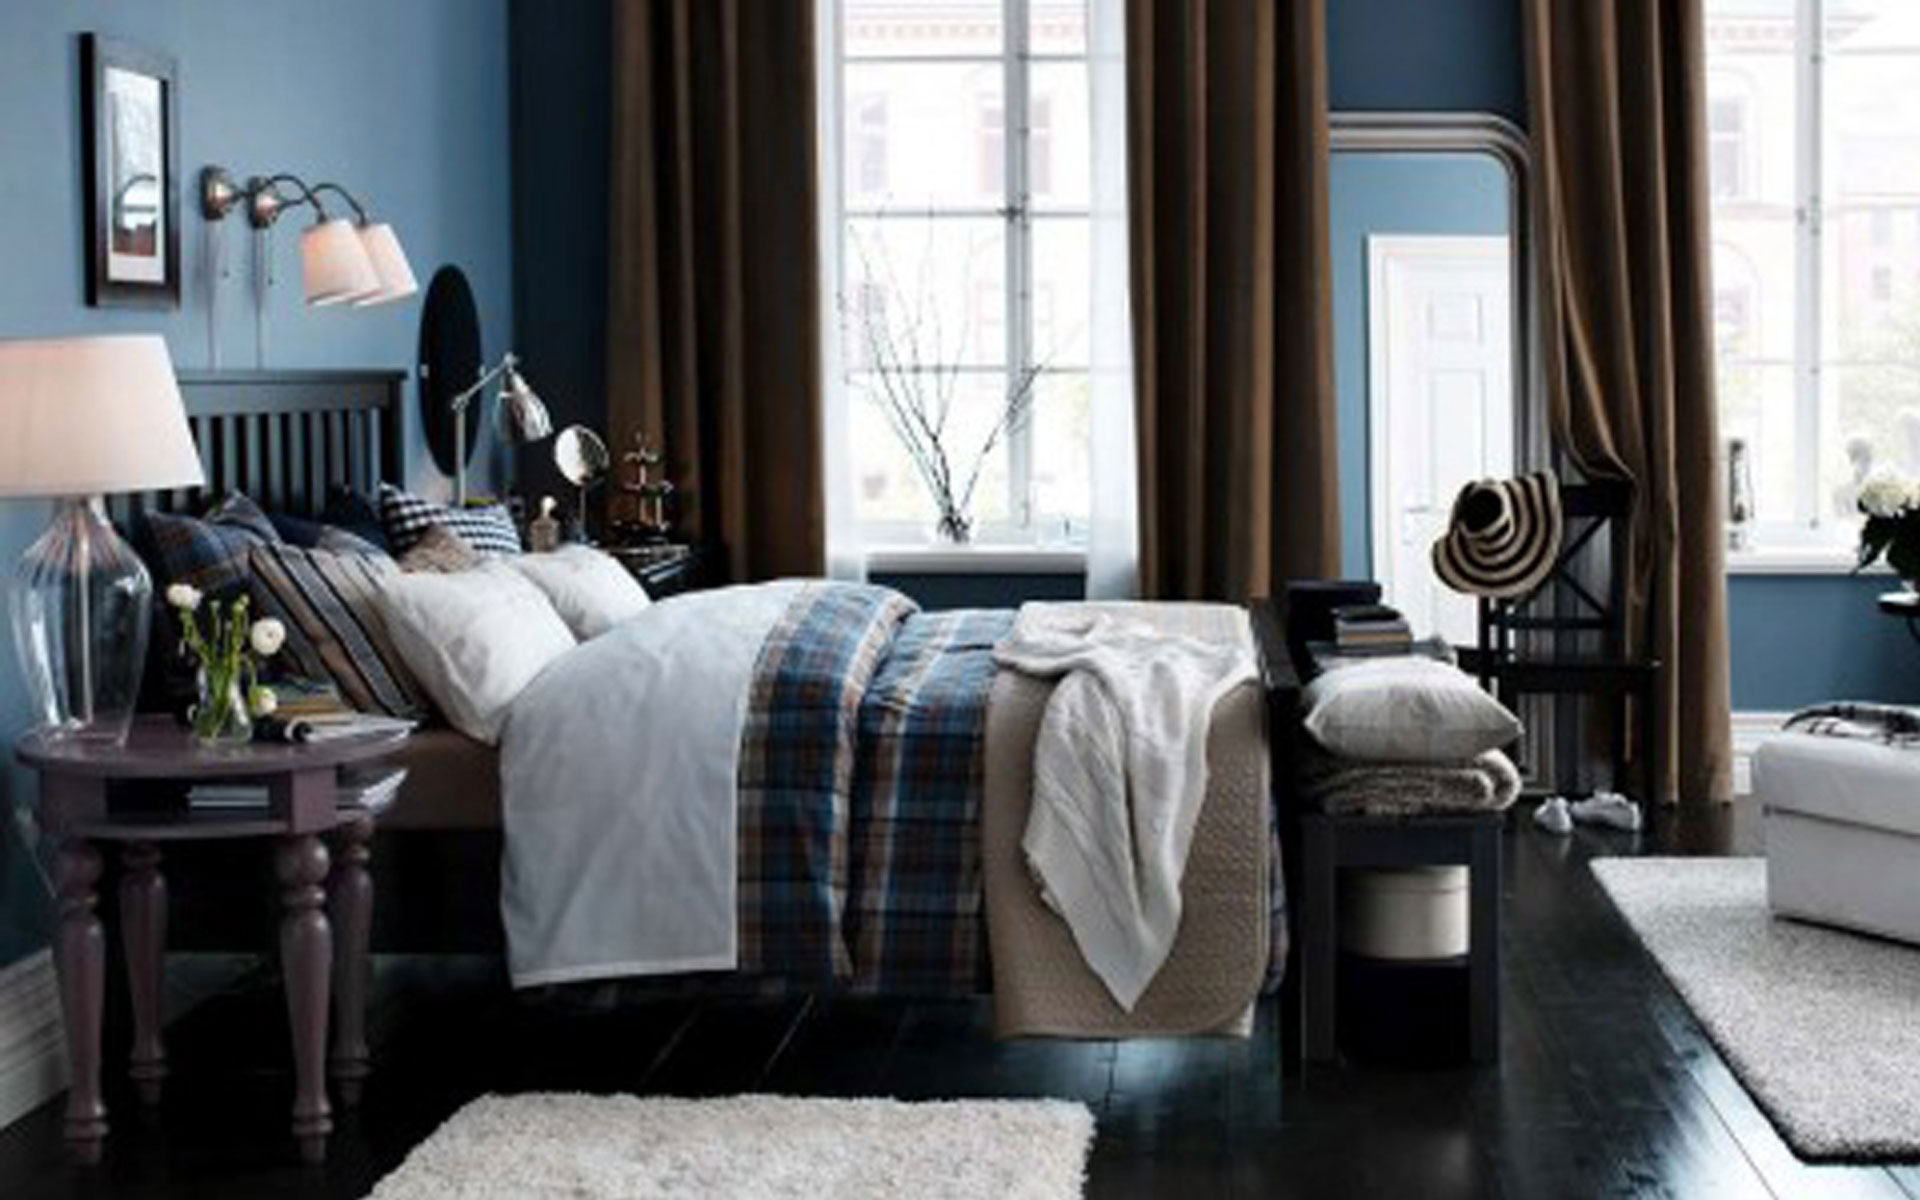 popular-design-ikea-bedrom-with-contemporary-brown-sheer-curtain-and-wooden-black-bed-design-for-ikea-bedroom-curtains-ikea-bedrom-with-new-modern-furniture-design-for-amazing-ikea-bedroom-design